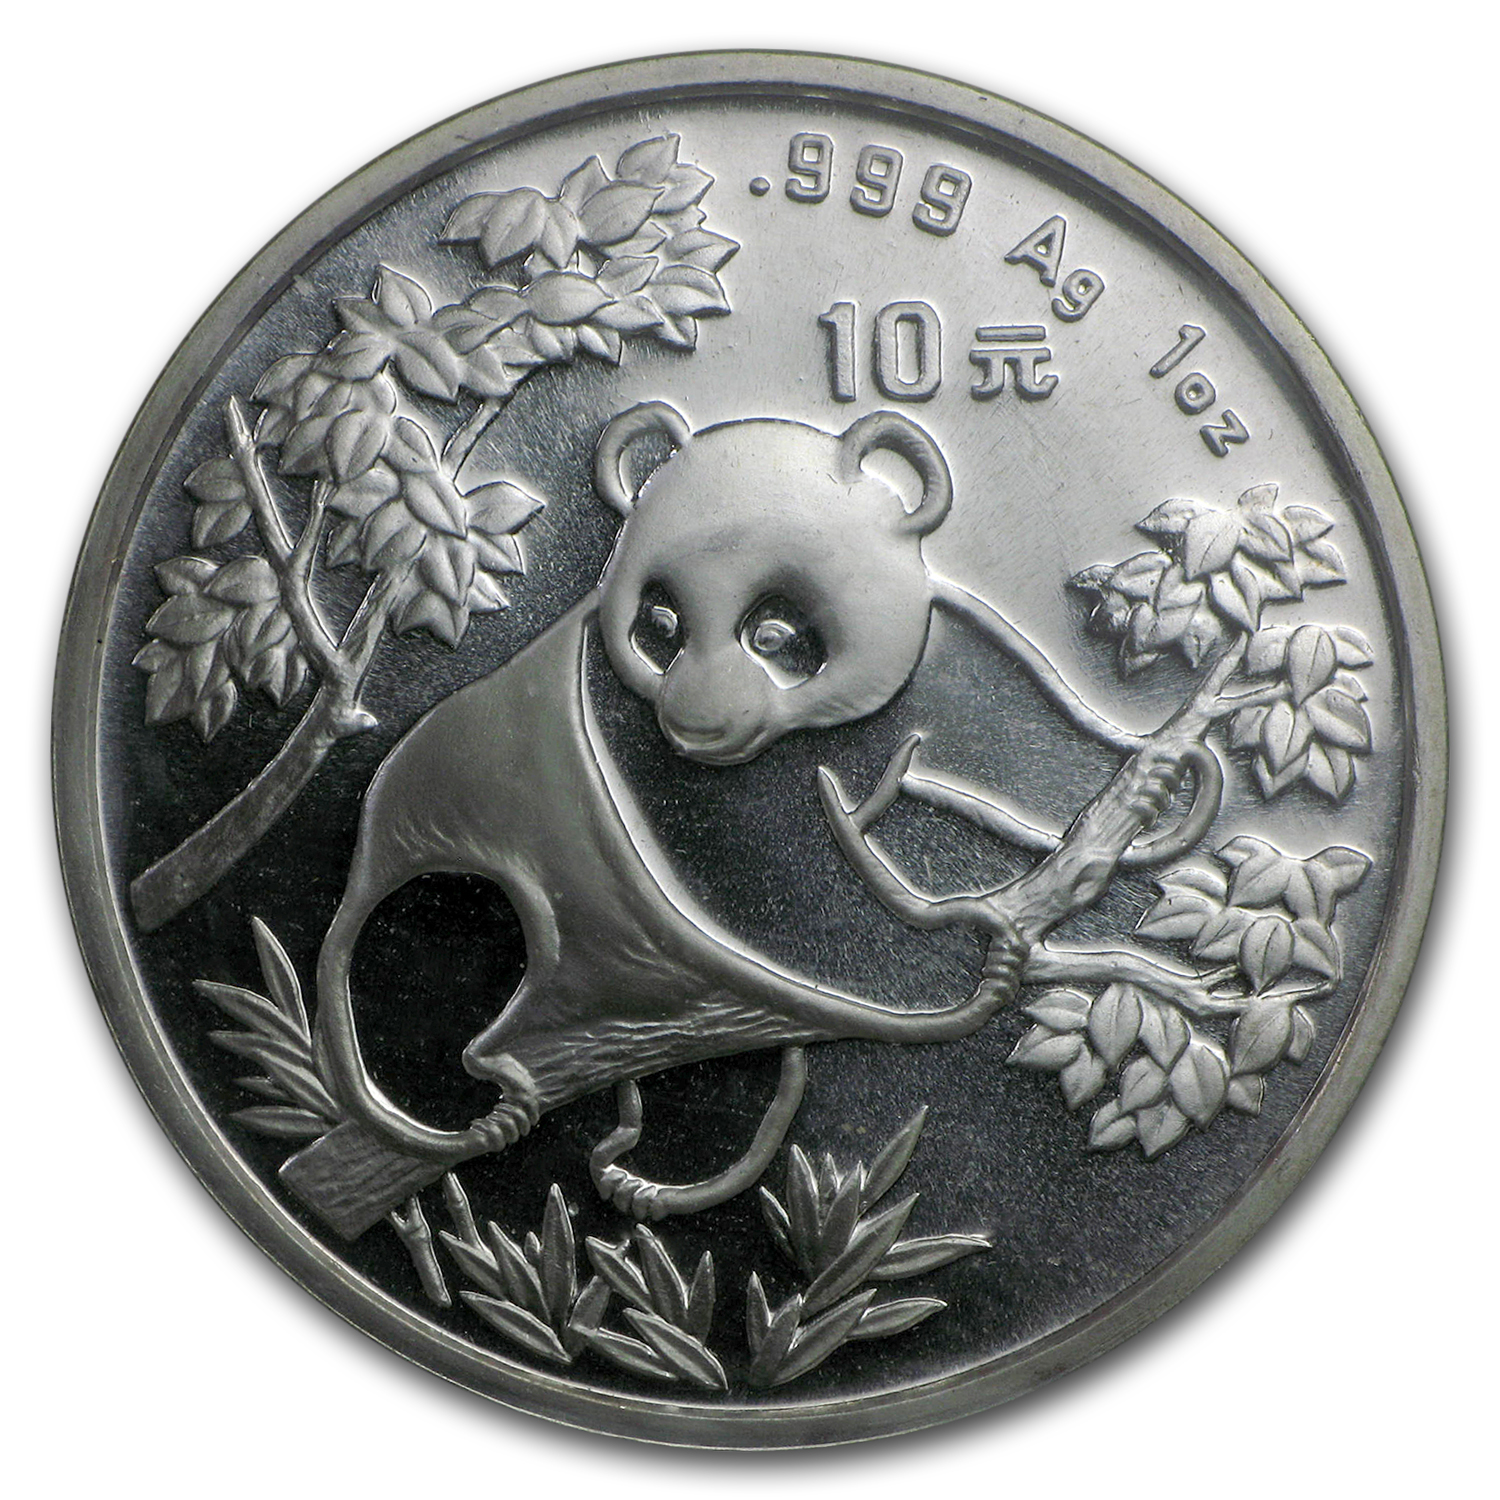 1992 China 1 oz Silver Panda Small Date BU (Sealed)